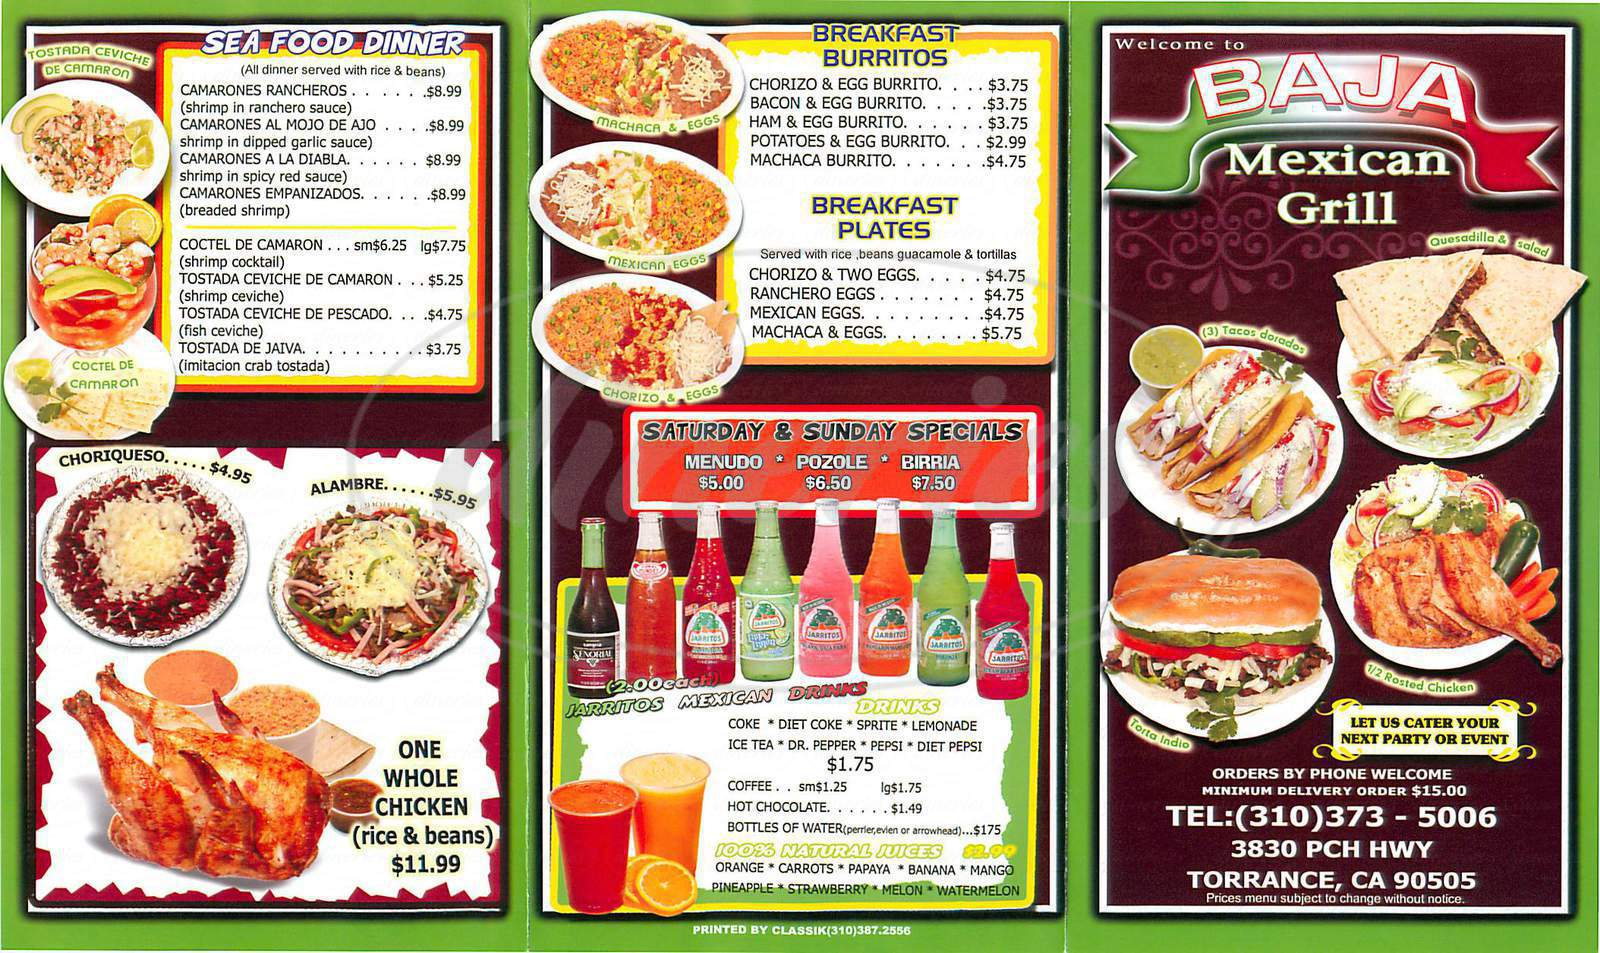 menu for Baja Mexican Grill